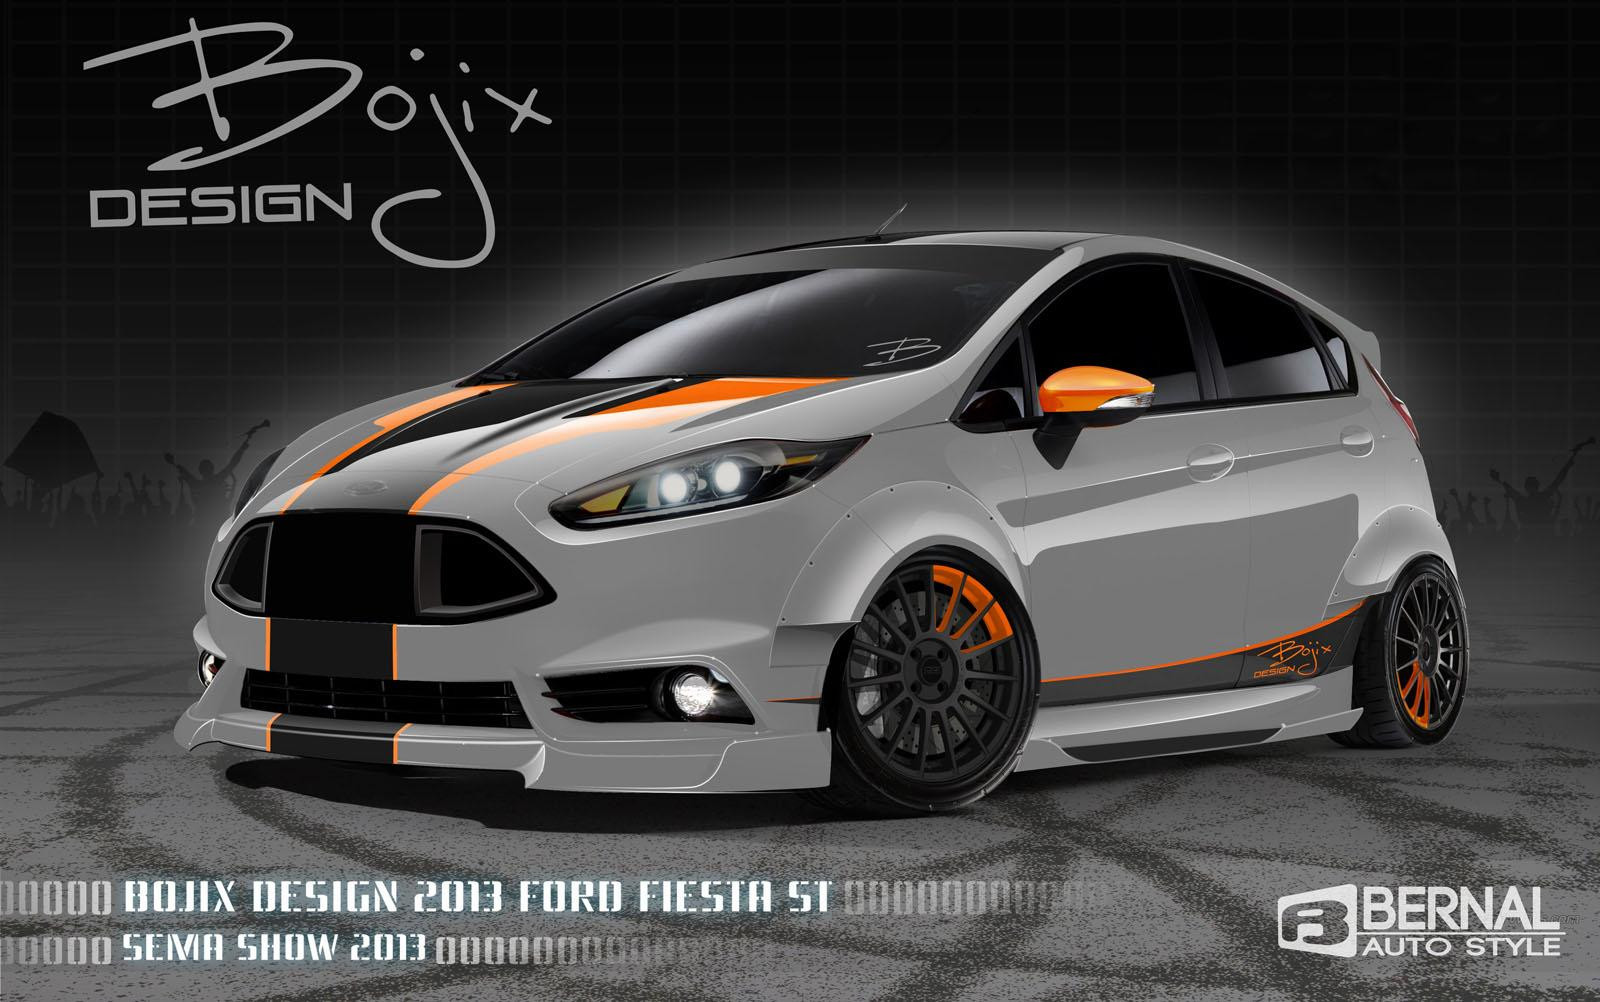 Fiesta St Aftermarket >> 2014 Ford Fiesta ST By Bojix Design Review - Top Speed